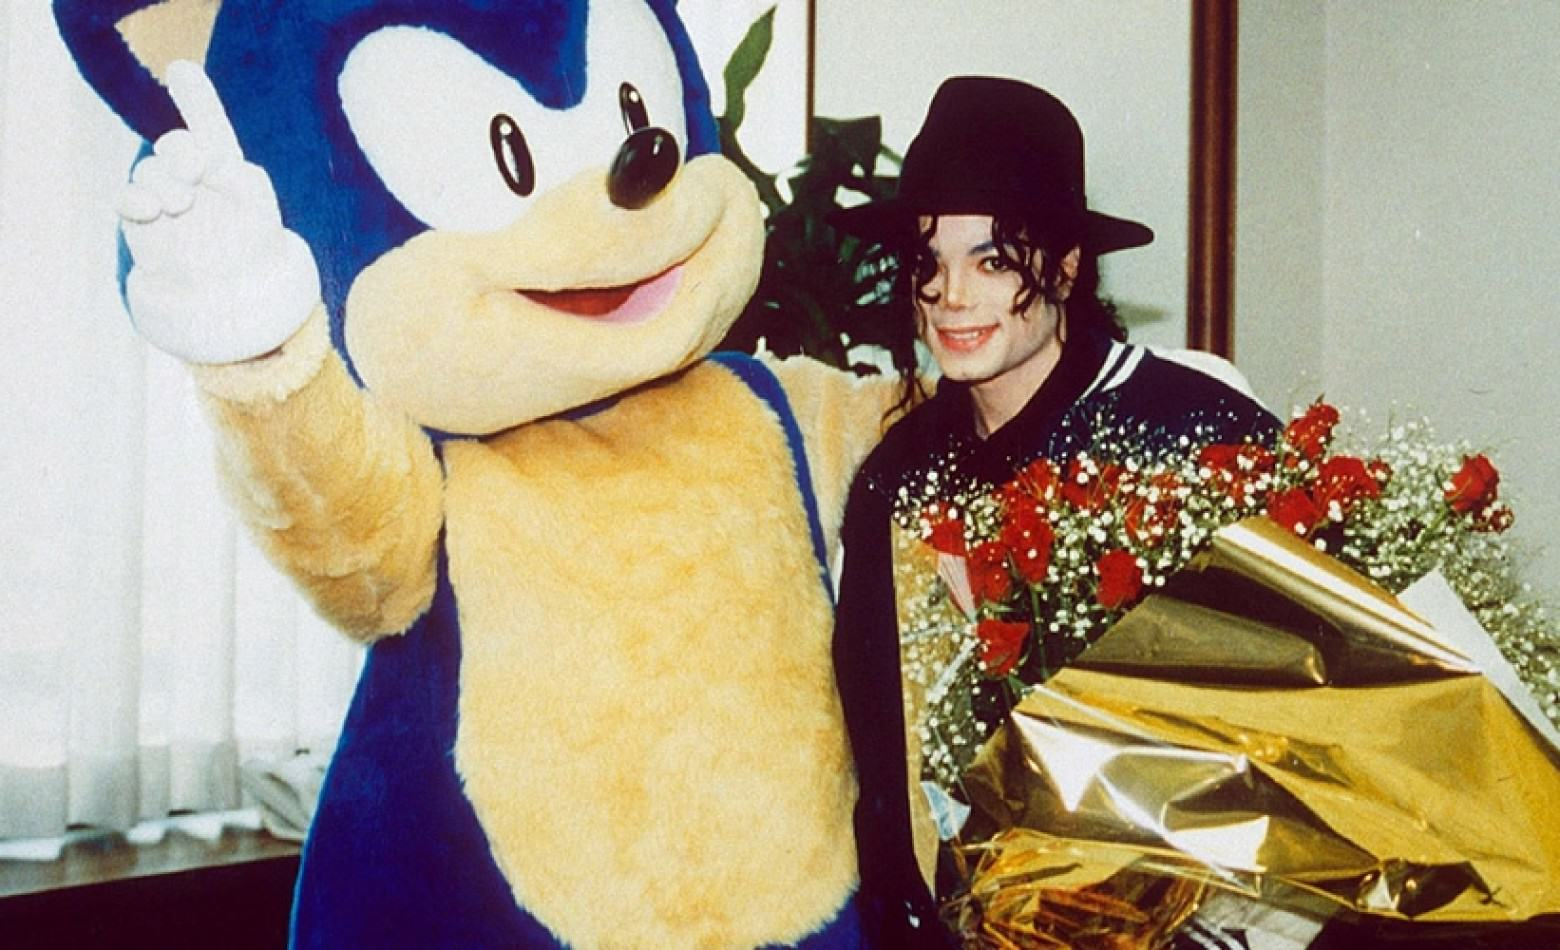 We May Finally Have Confirmation Of Michael Jacksons Involvement With Sonic 3 Sonic and Michael Jackson sonic the hedgehog 38220318 1560 950